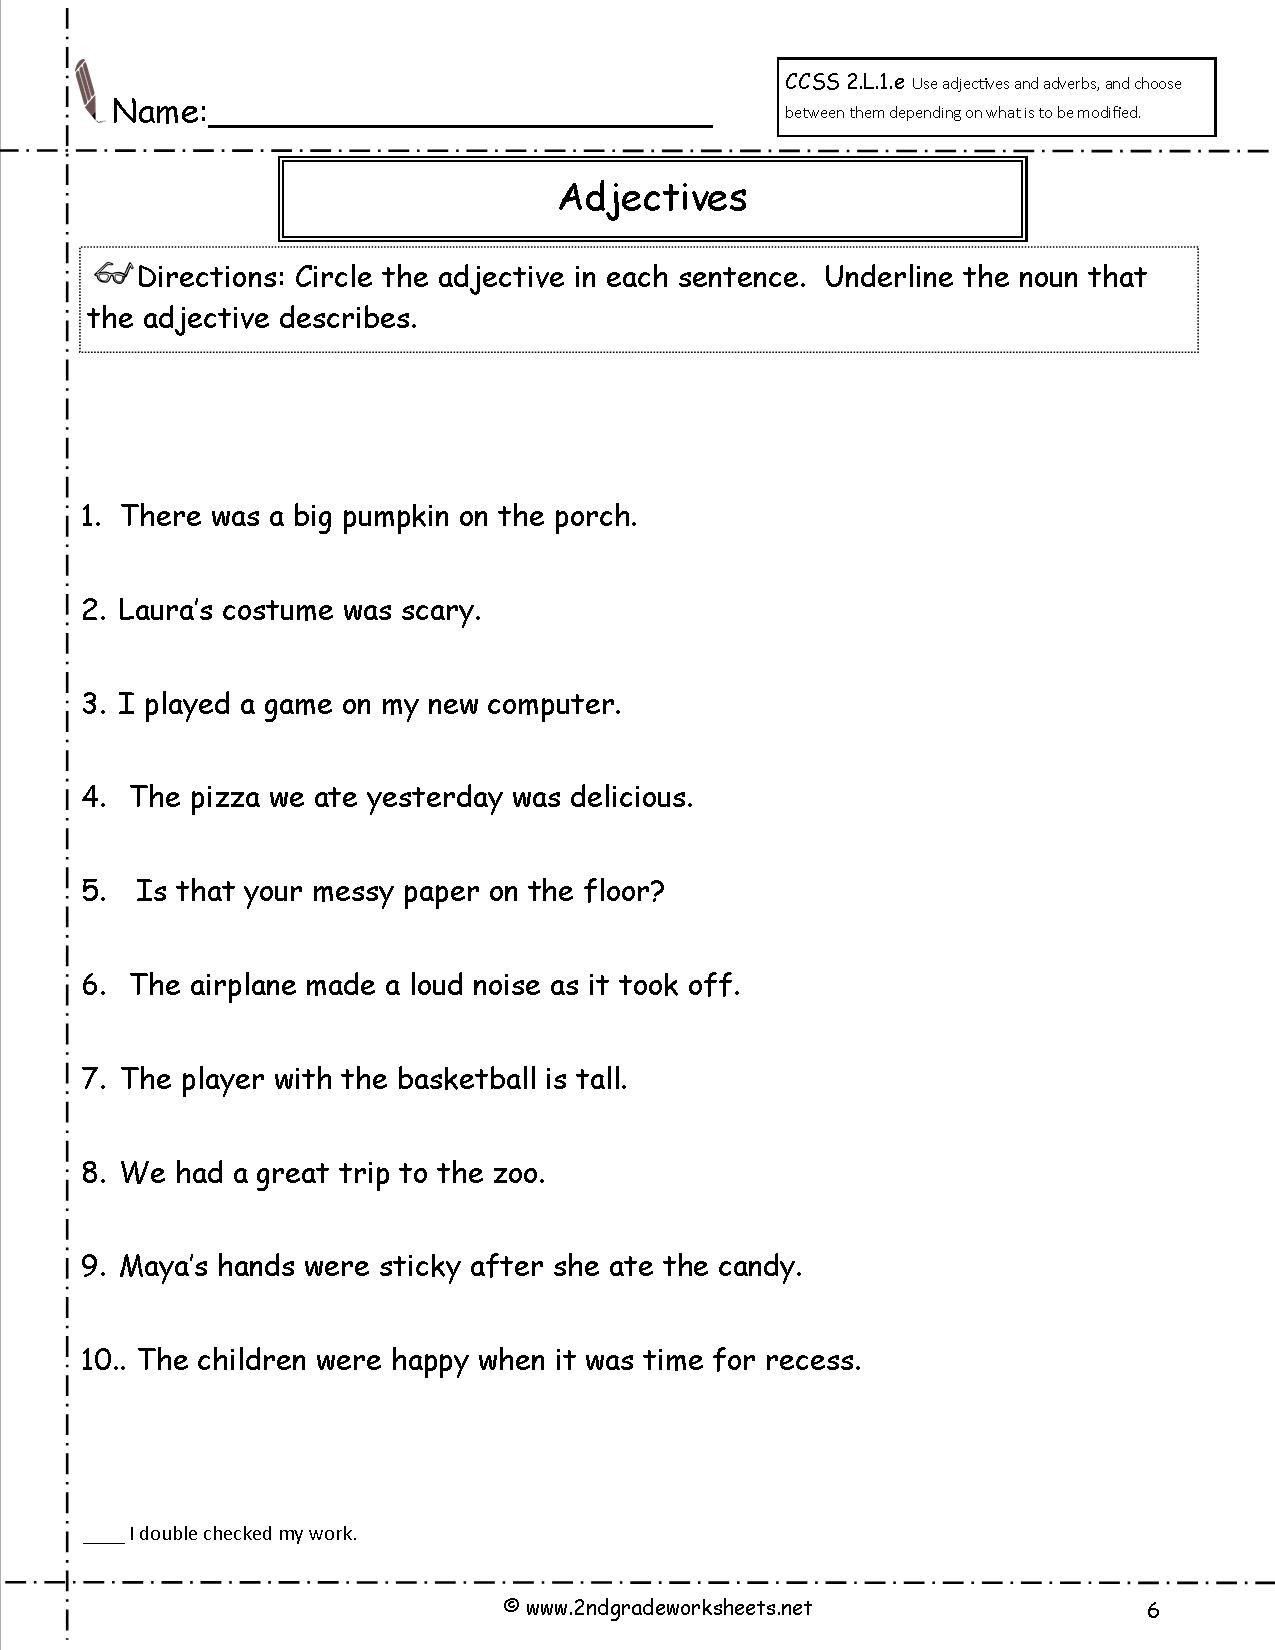 Adjectives Worksheet 2nd Grade Looking for Tutor Anime Girl Coloring Pages Adjectives